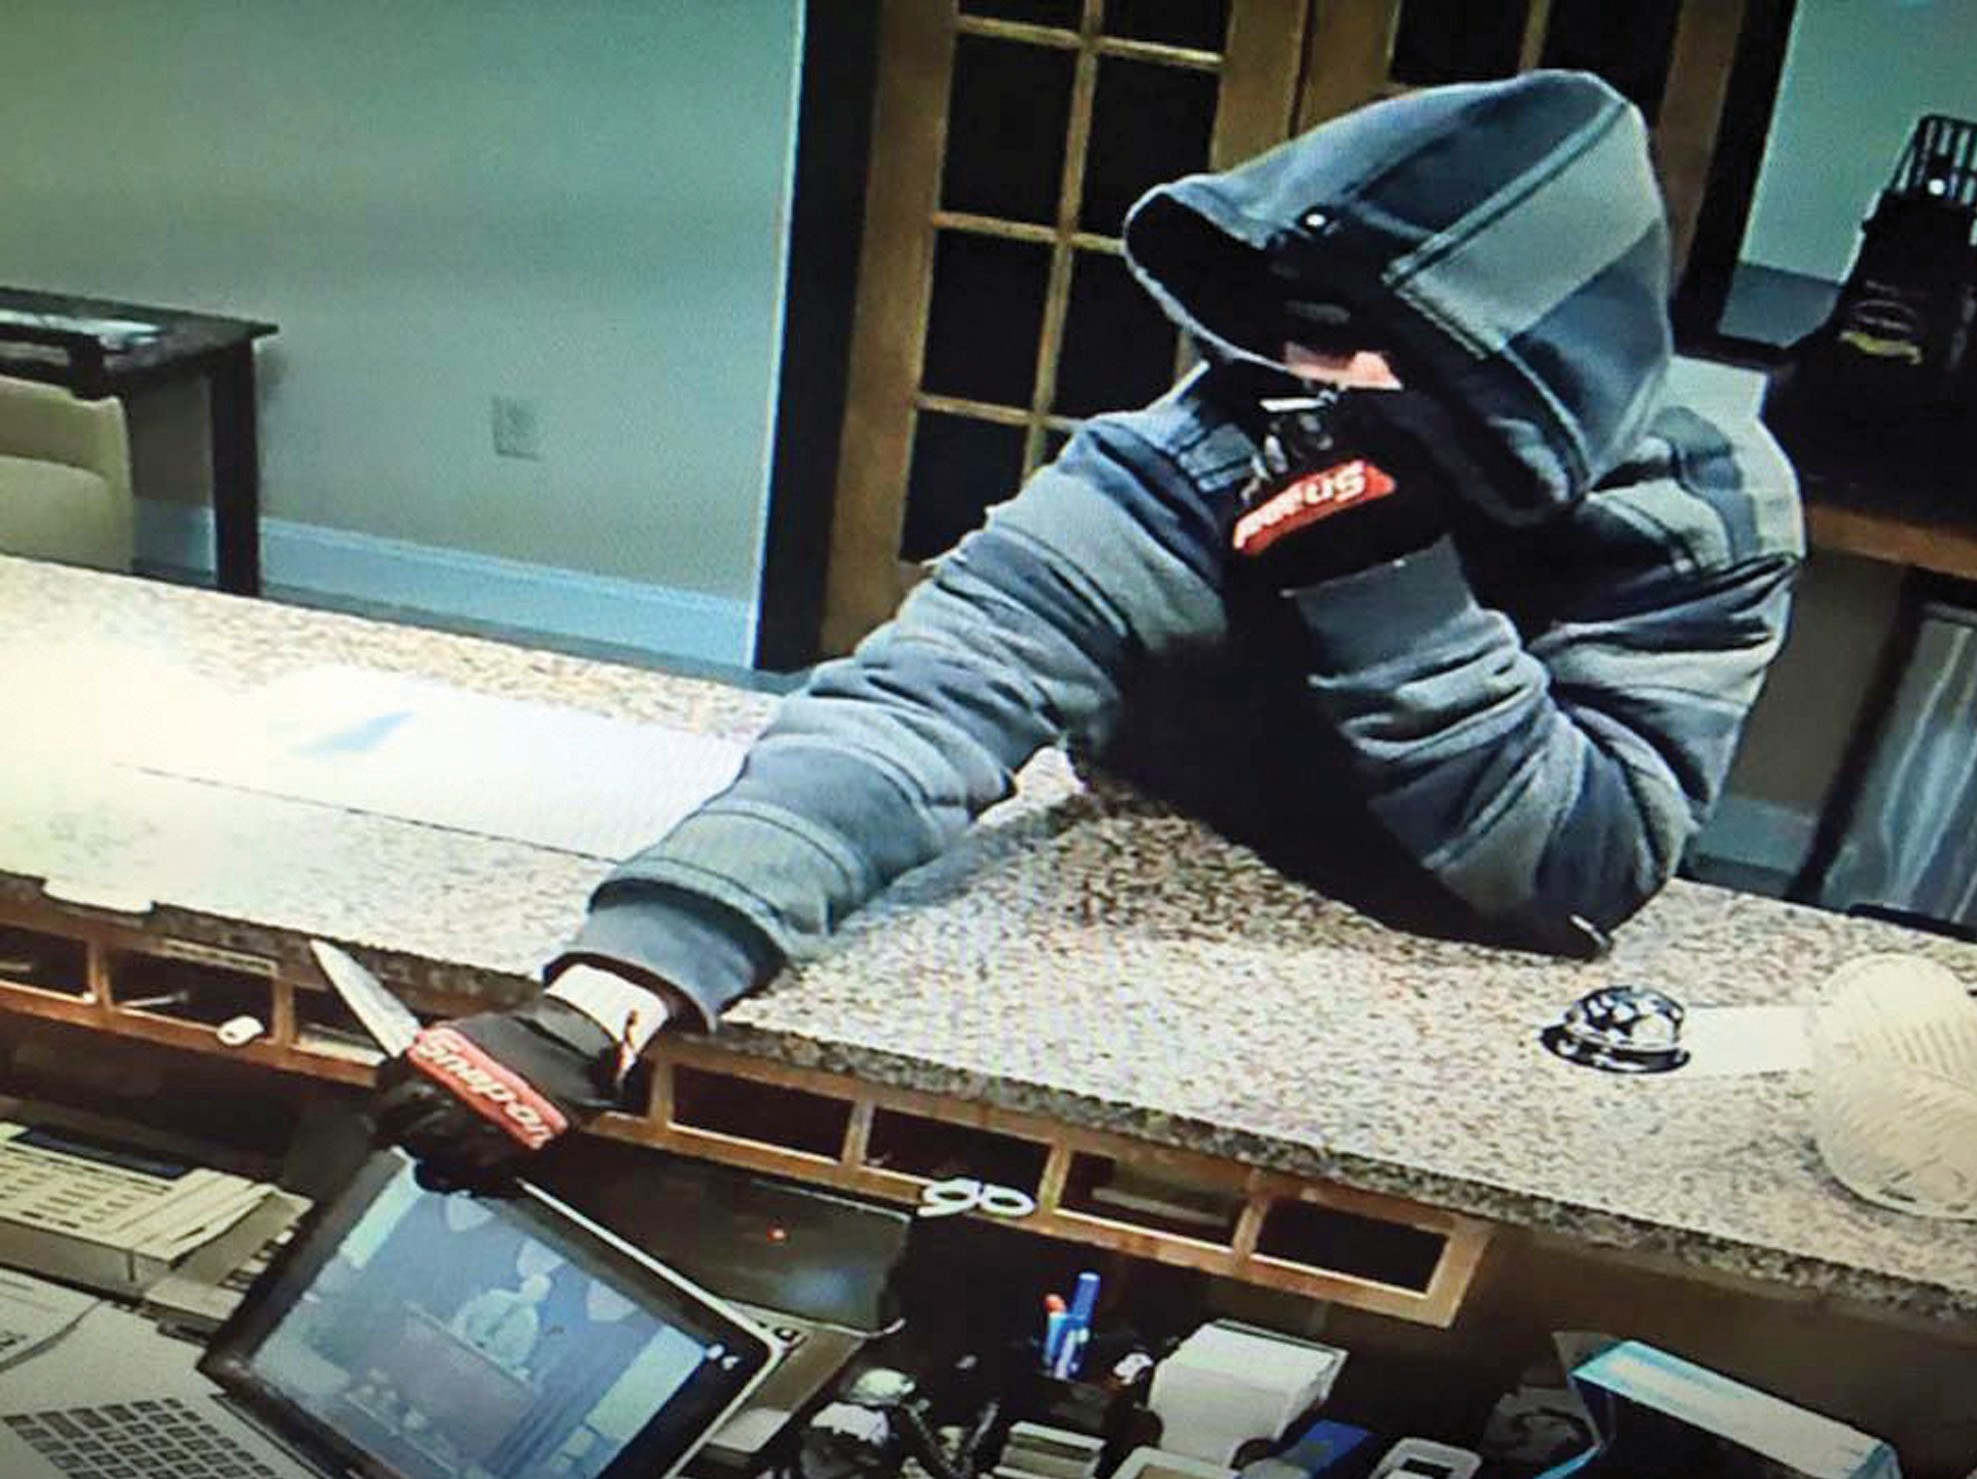 This still image from video surveillance, posted on the Sanford Police Department's Facebook page, shows a man attempting to rob the Super 8 Motel in Sanford Nov. 24. While Facebook has proven invaluable to police departments in York County in identifying those wanted in connection with various crimes, so far, no one has been charged in this case.